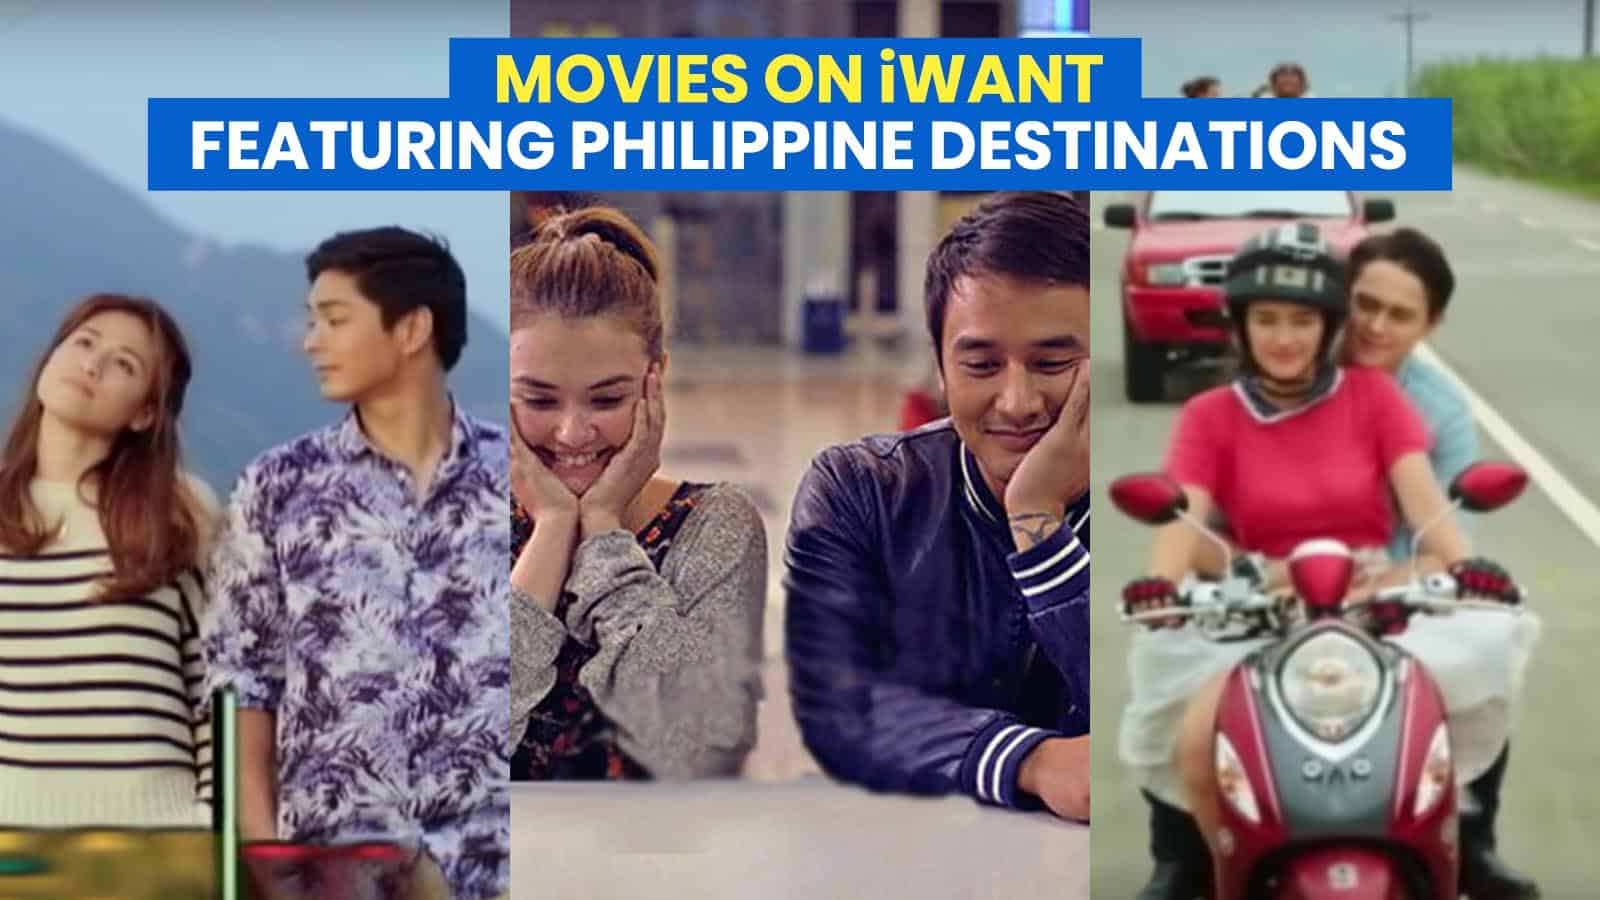 11 Movies Showcasing Philippine Destinations that You can Watch on iWant